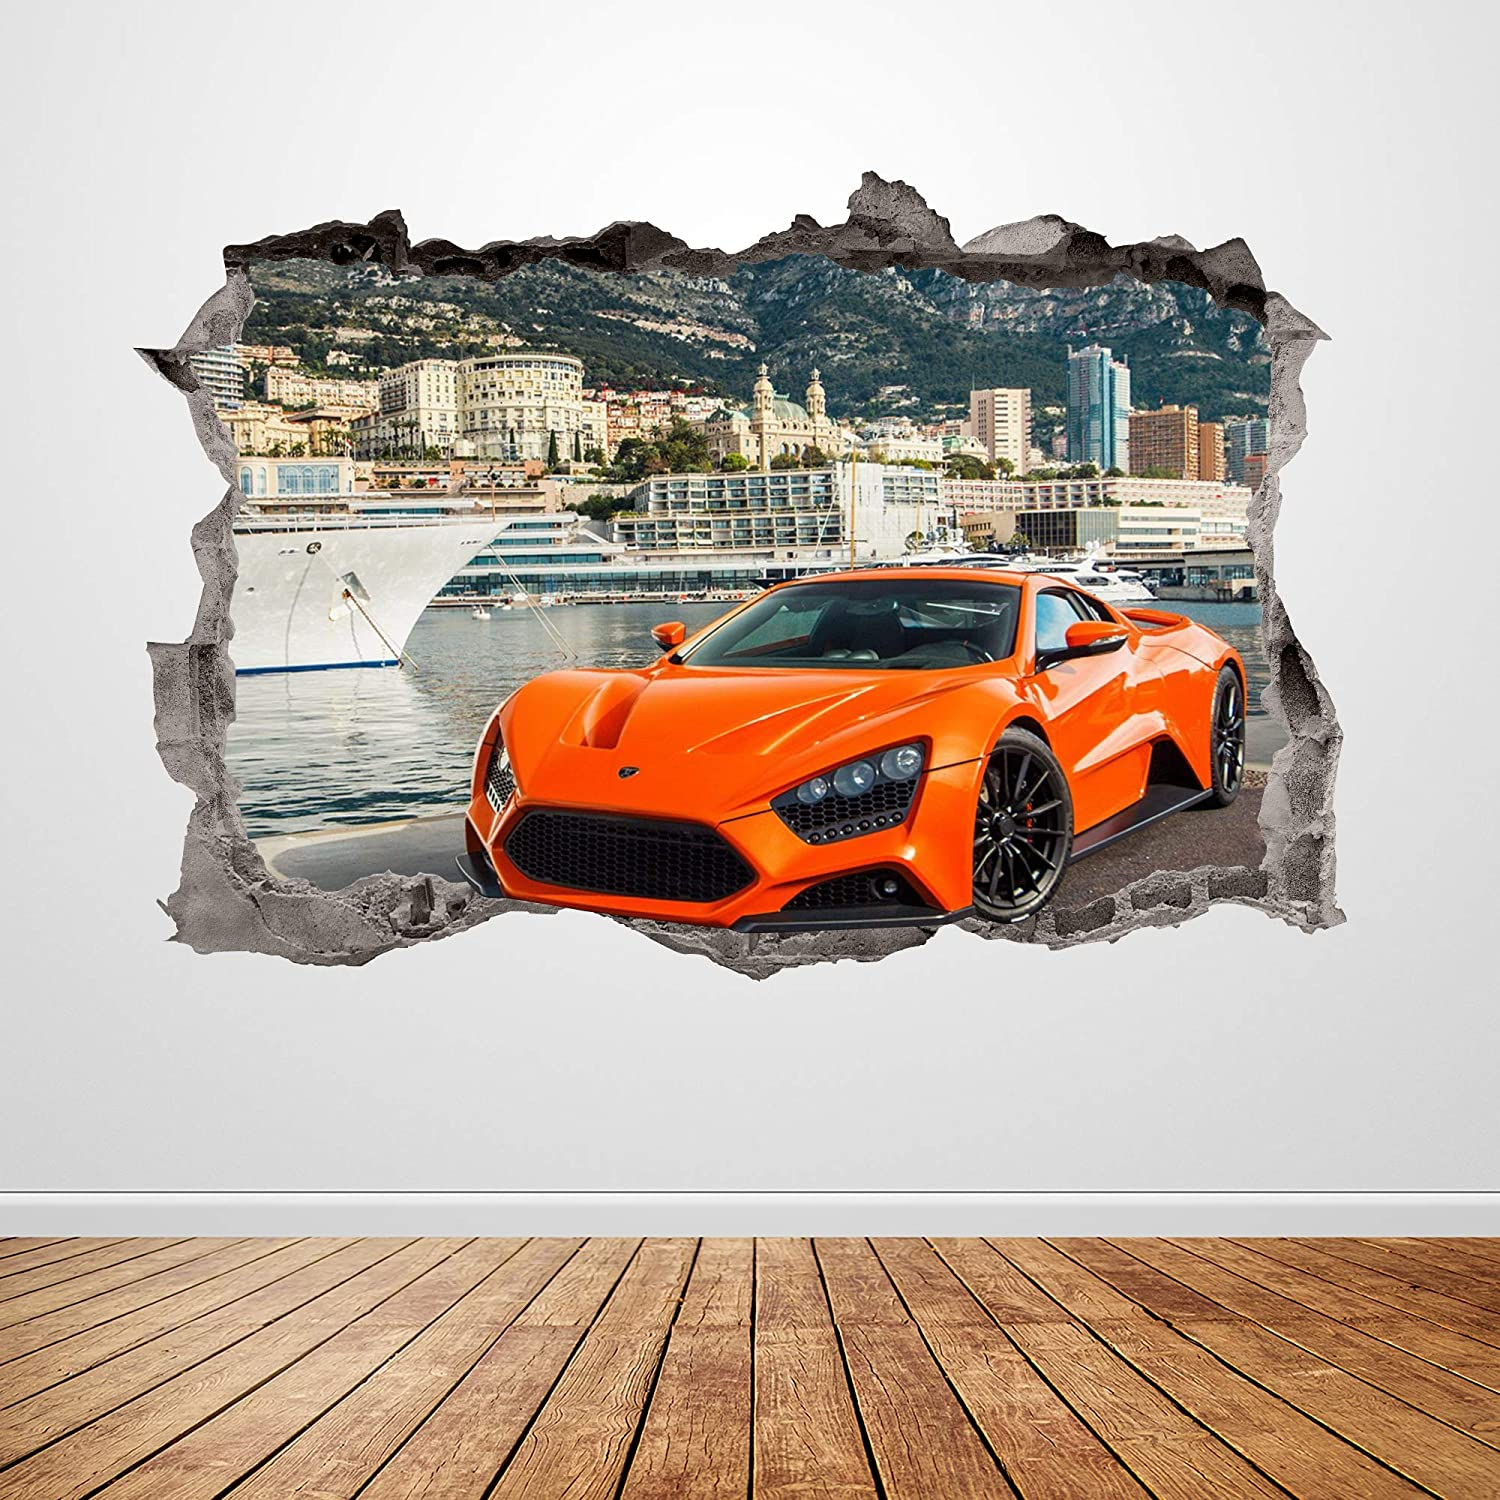 Lamborghini Wall Decal Smashed 3D Graphic Orange Racing Car Wall Sticker Art Mural Poster Kids Room Decor Gift UP189 (36